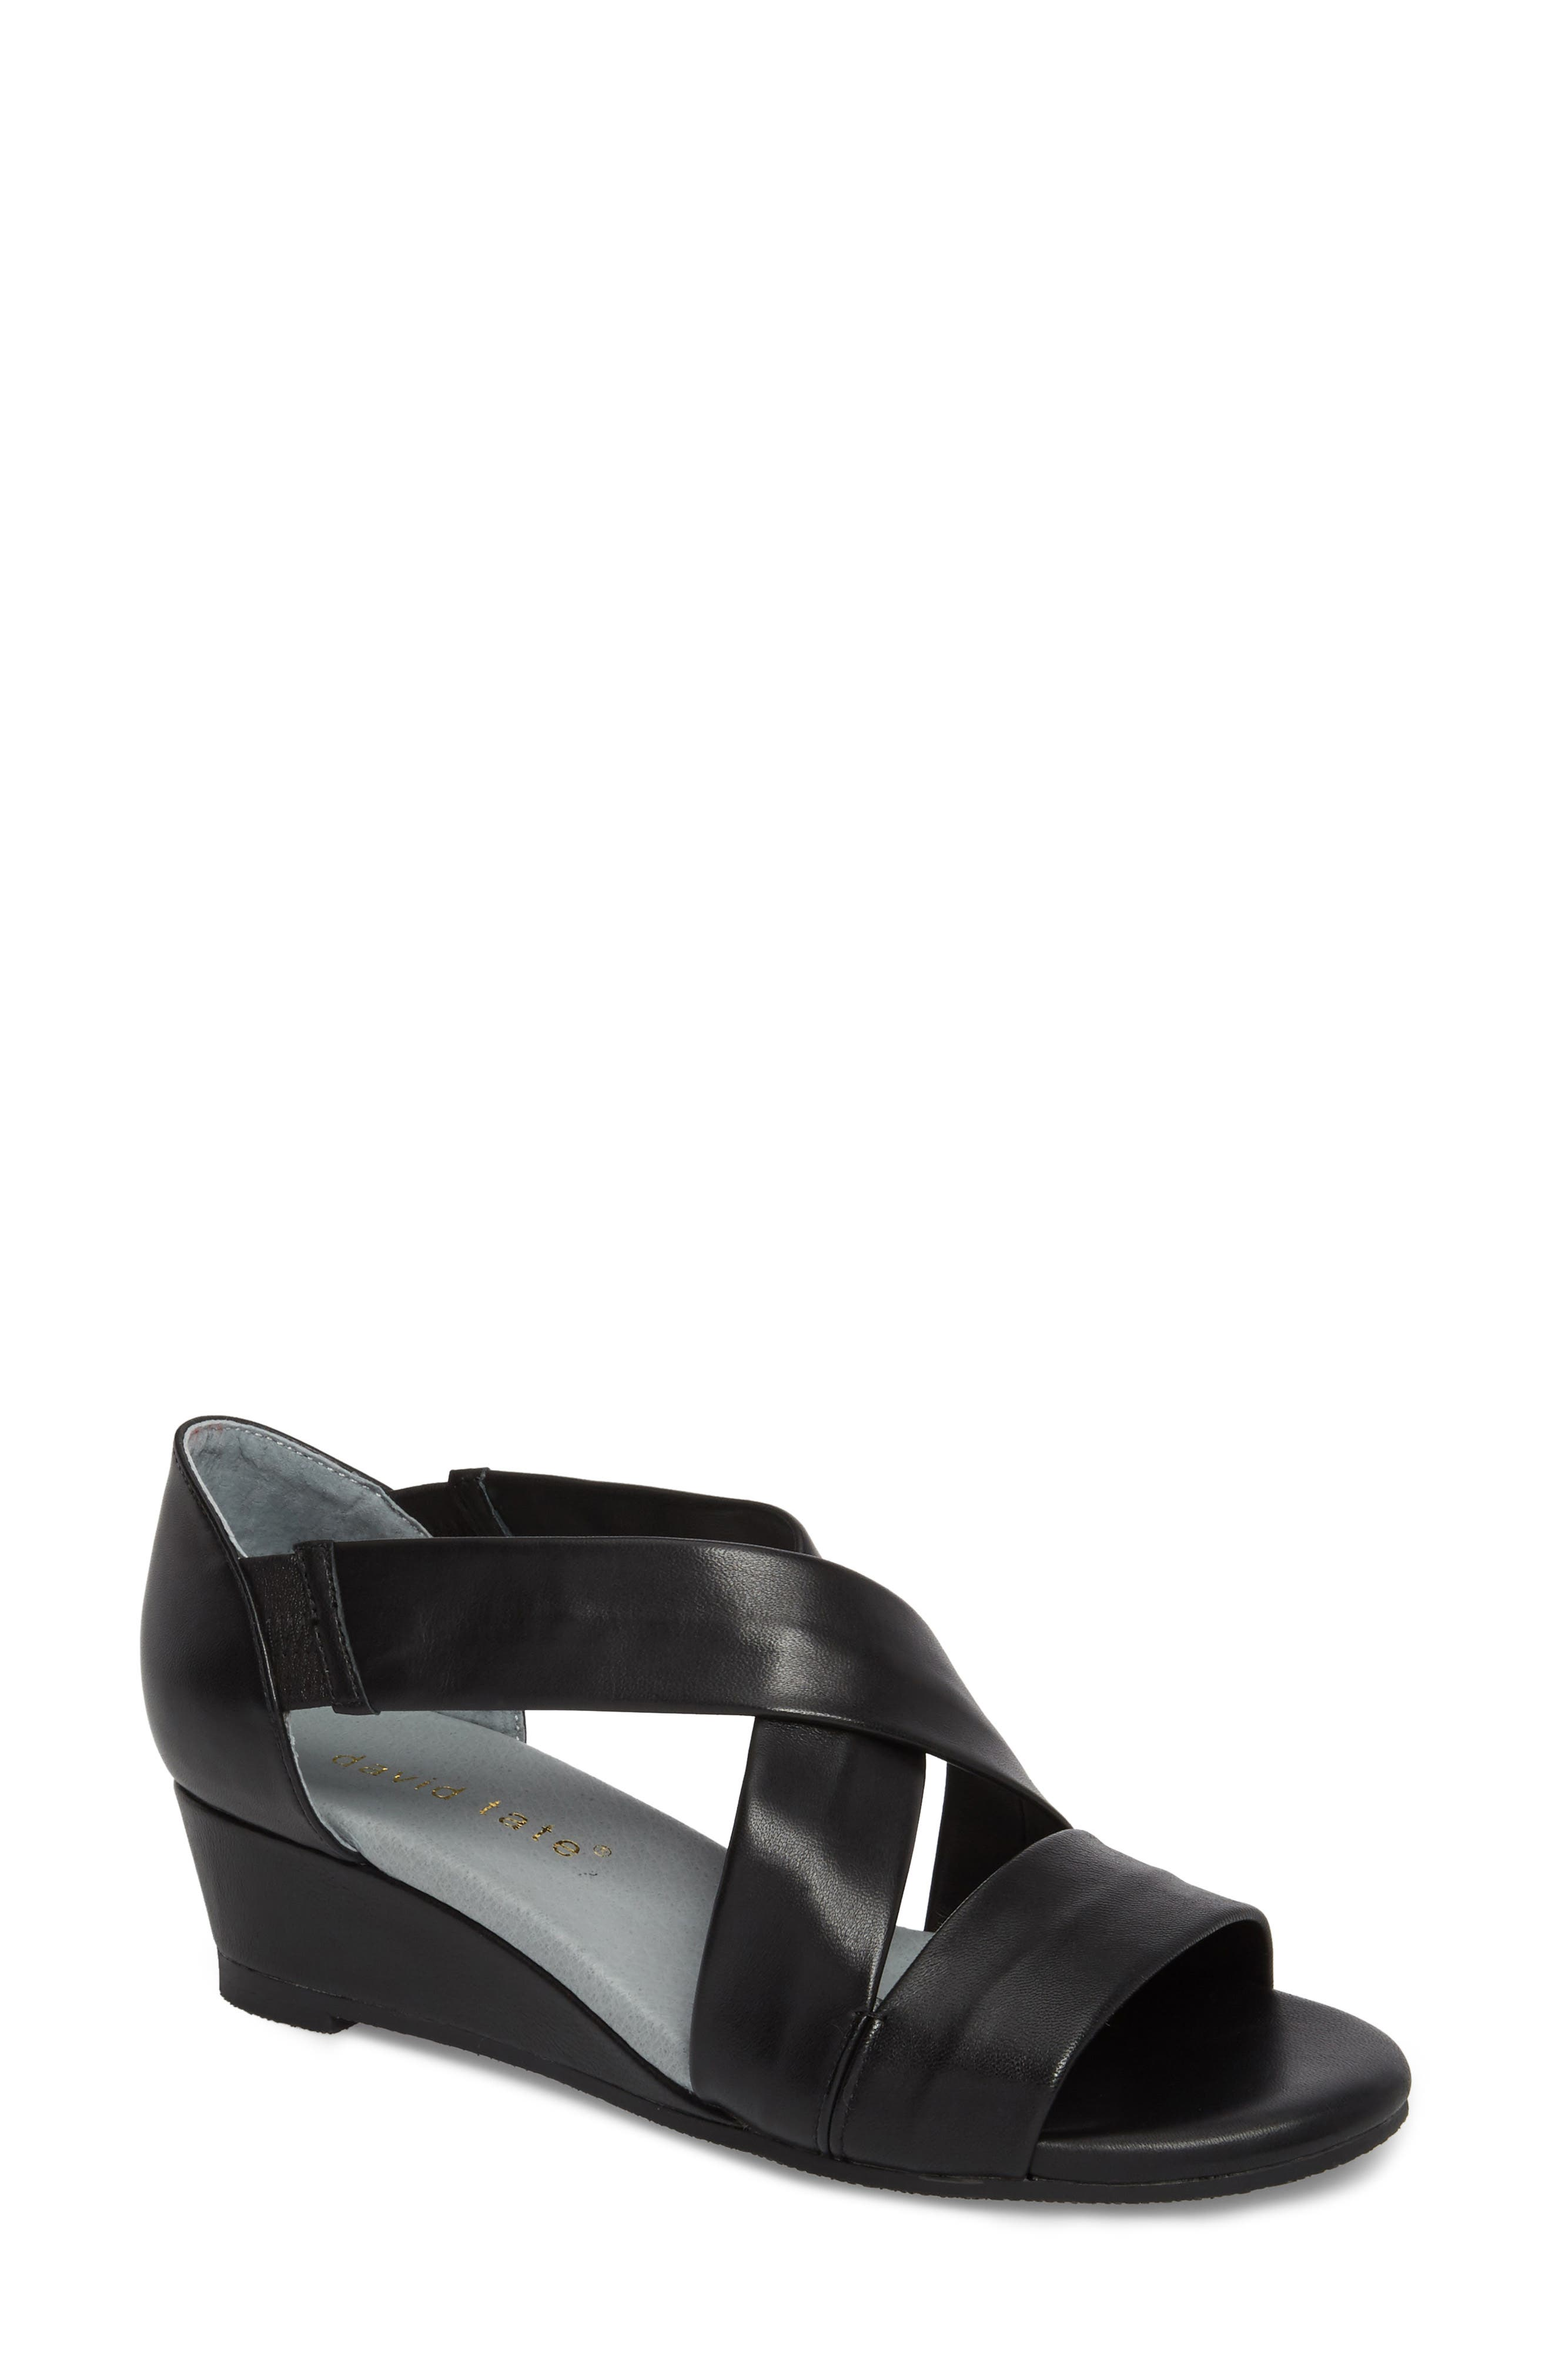 Swell Cross Strap Wedge Sandal,                             Main thumbnail 1, color,                             Black Leather